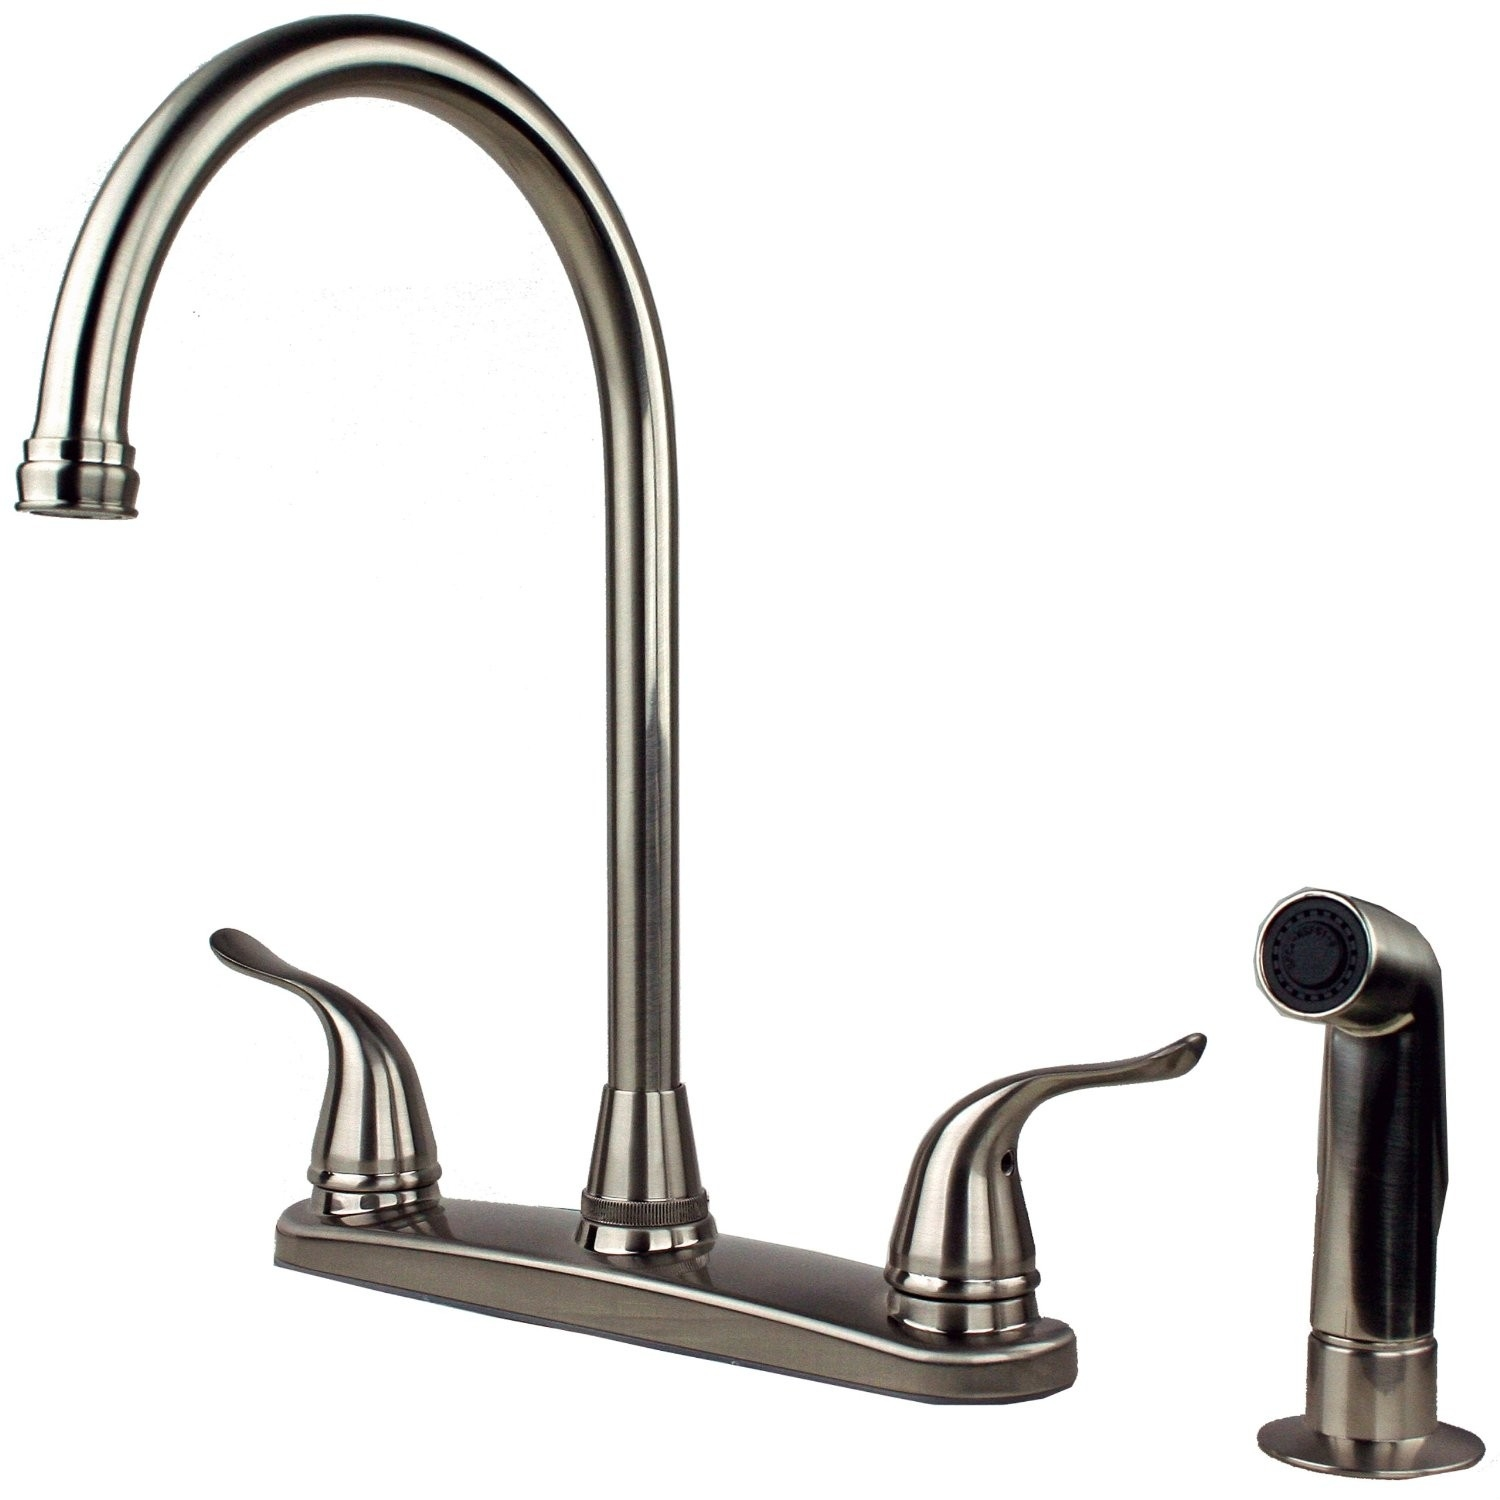 Ideas, long neck kitchen sink faucet long neck kitchen sink faucet sink faucet design bennington 112105 ss 2 handle high arc kitchen 1500 x 1500  .